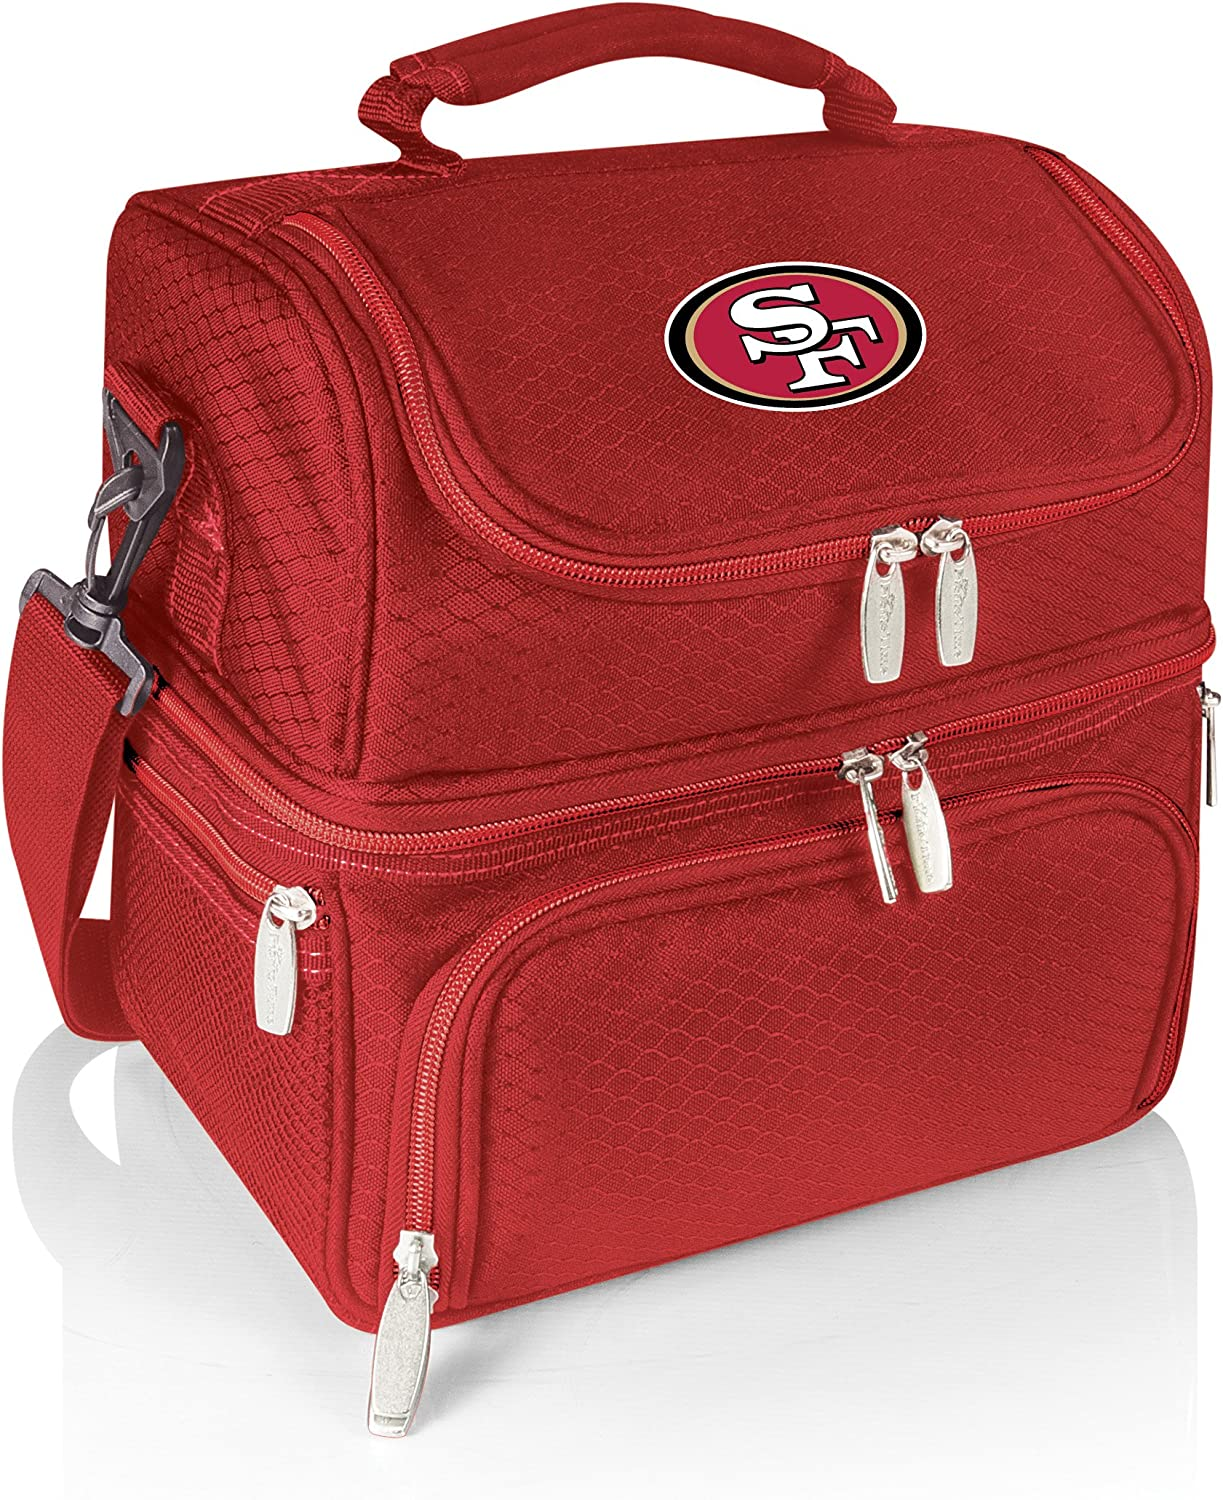 PICNIC TIME NFL San Francisco 49ers Pranzo Insulated Lunch Tote